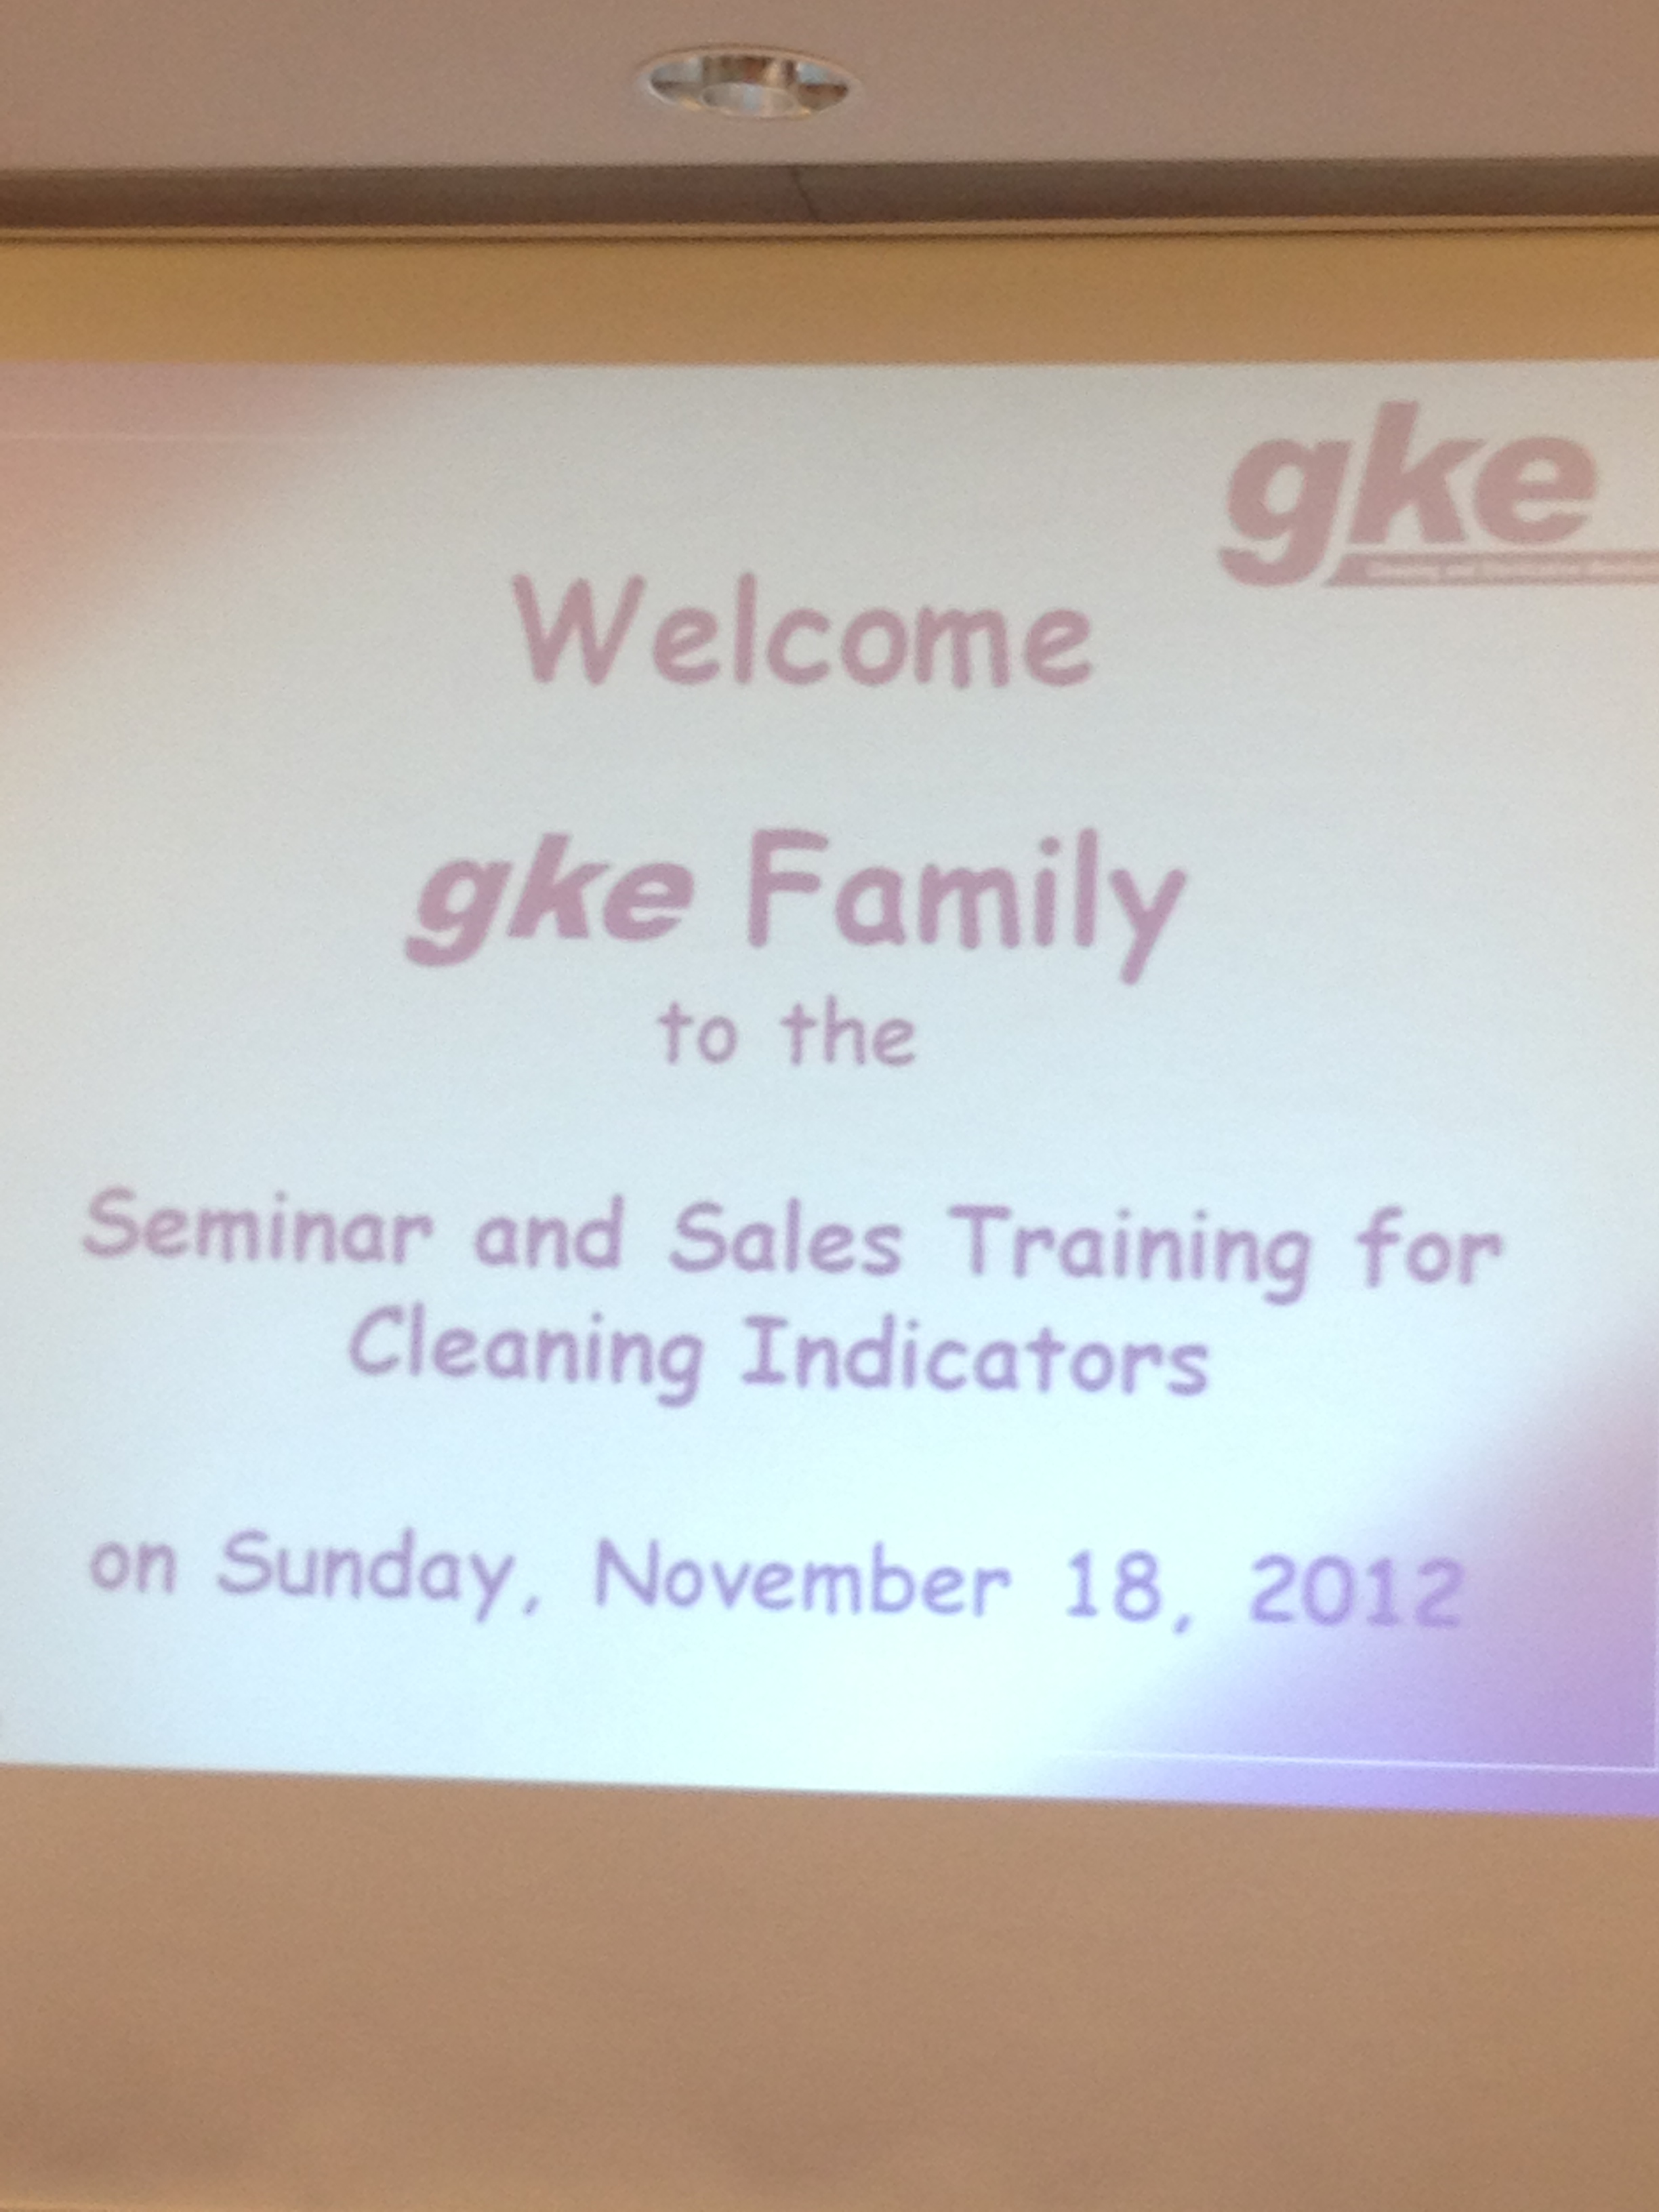 gke seminar & sales training, German